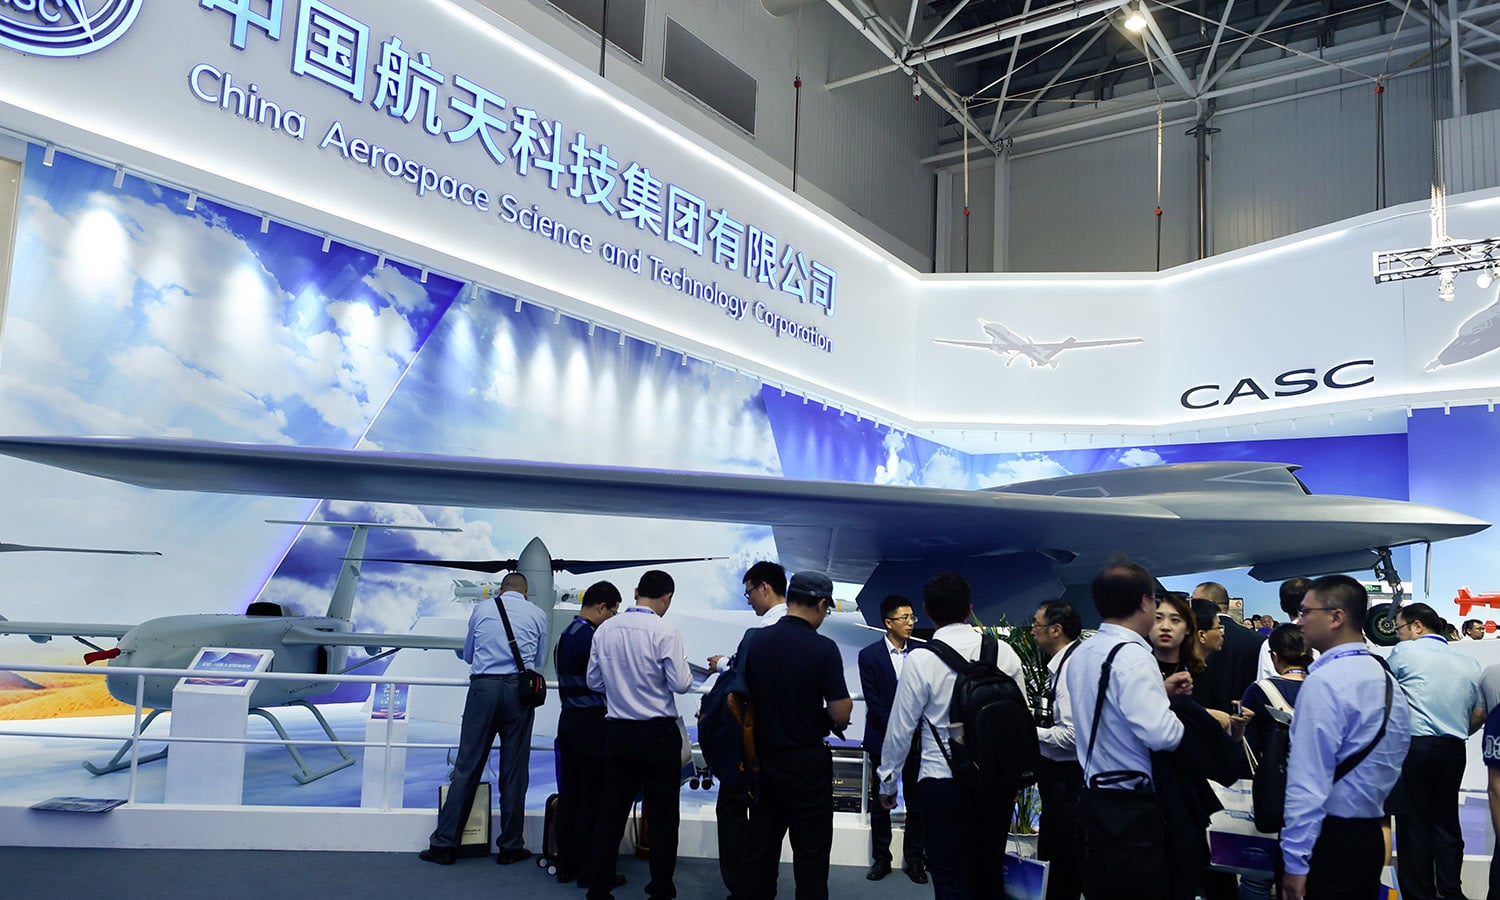 In this November 6 file photo, a model of CH-7 HALE Stealth Unmanned Reconnaissance Aircraft is seen on display at the Airshow China 2018 in Zhuhai, south China's Guangdong province. — AFP